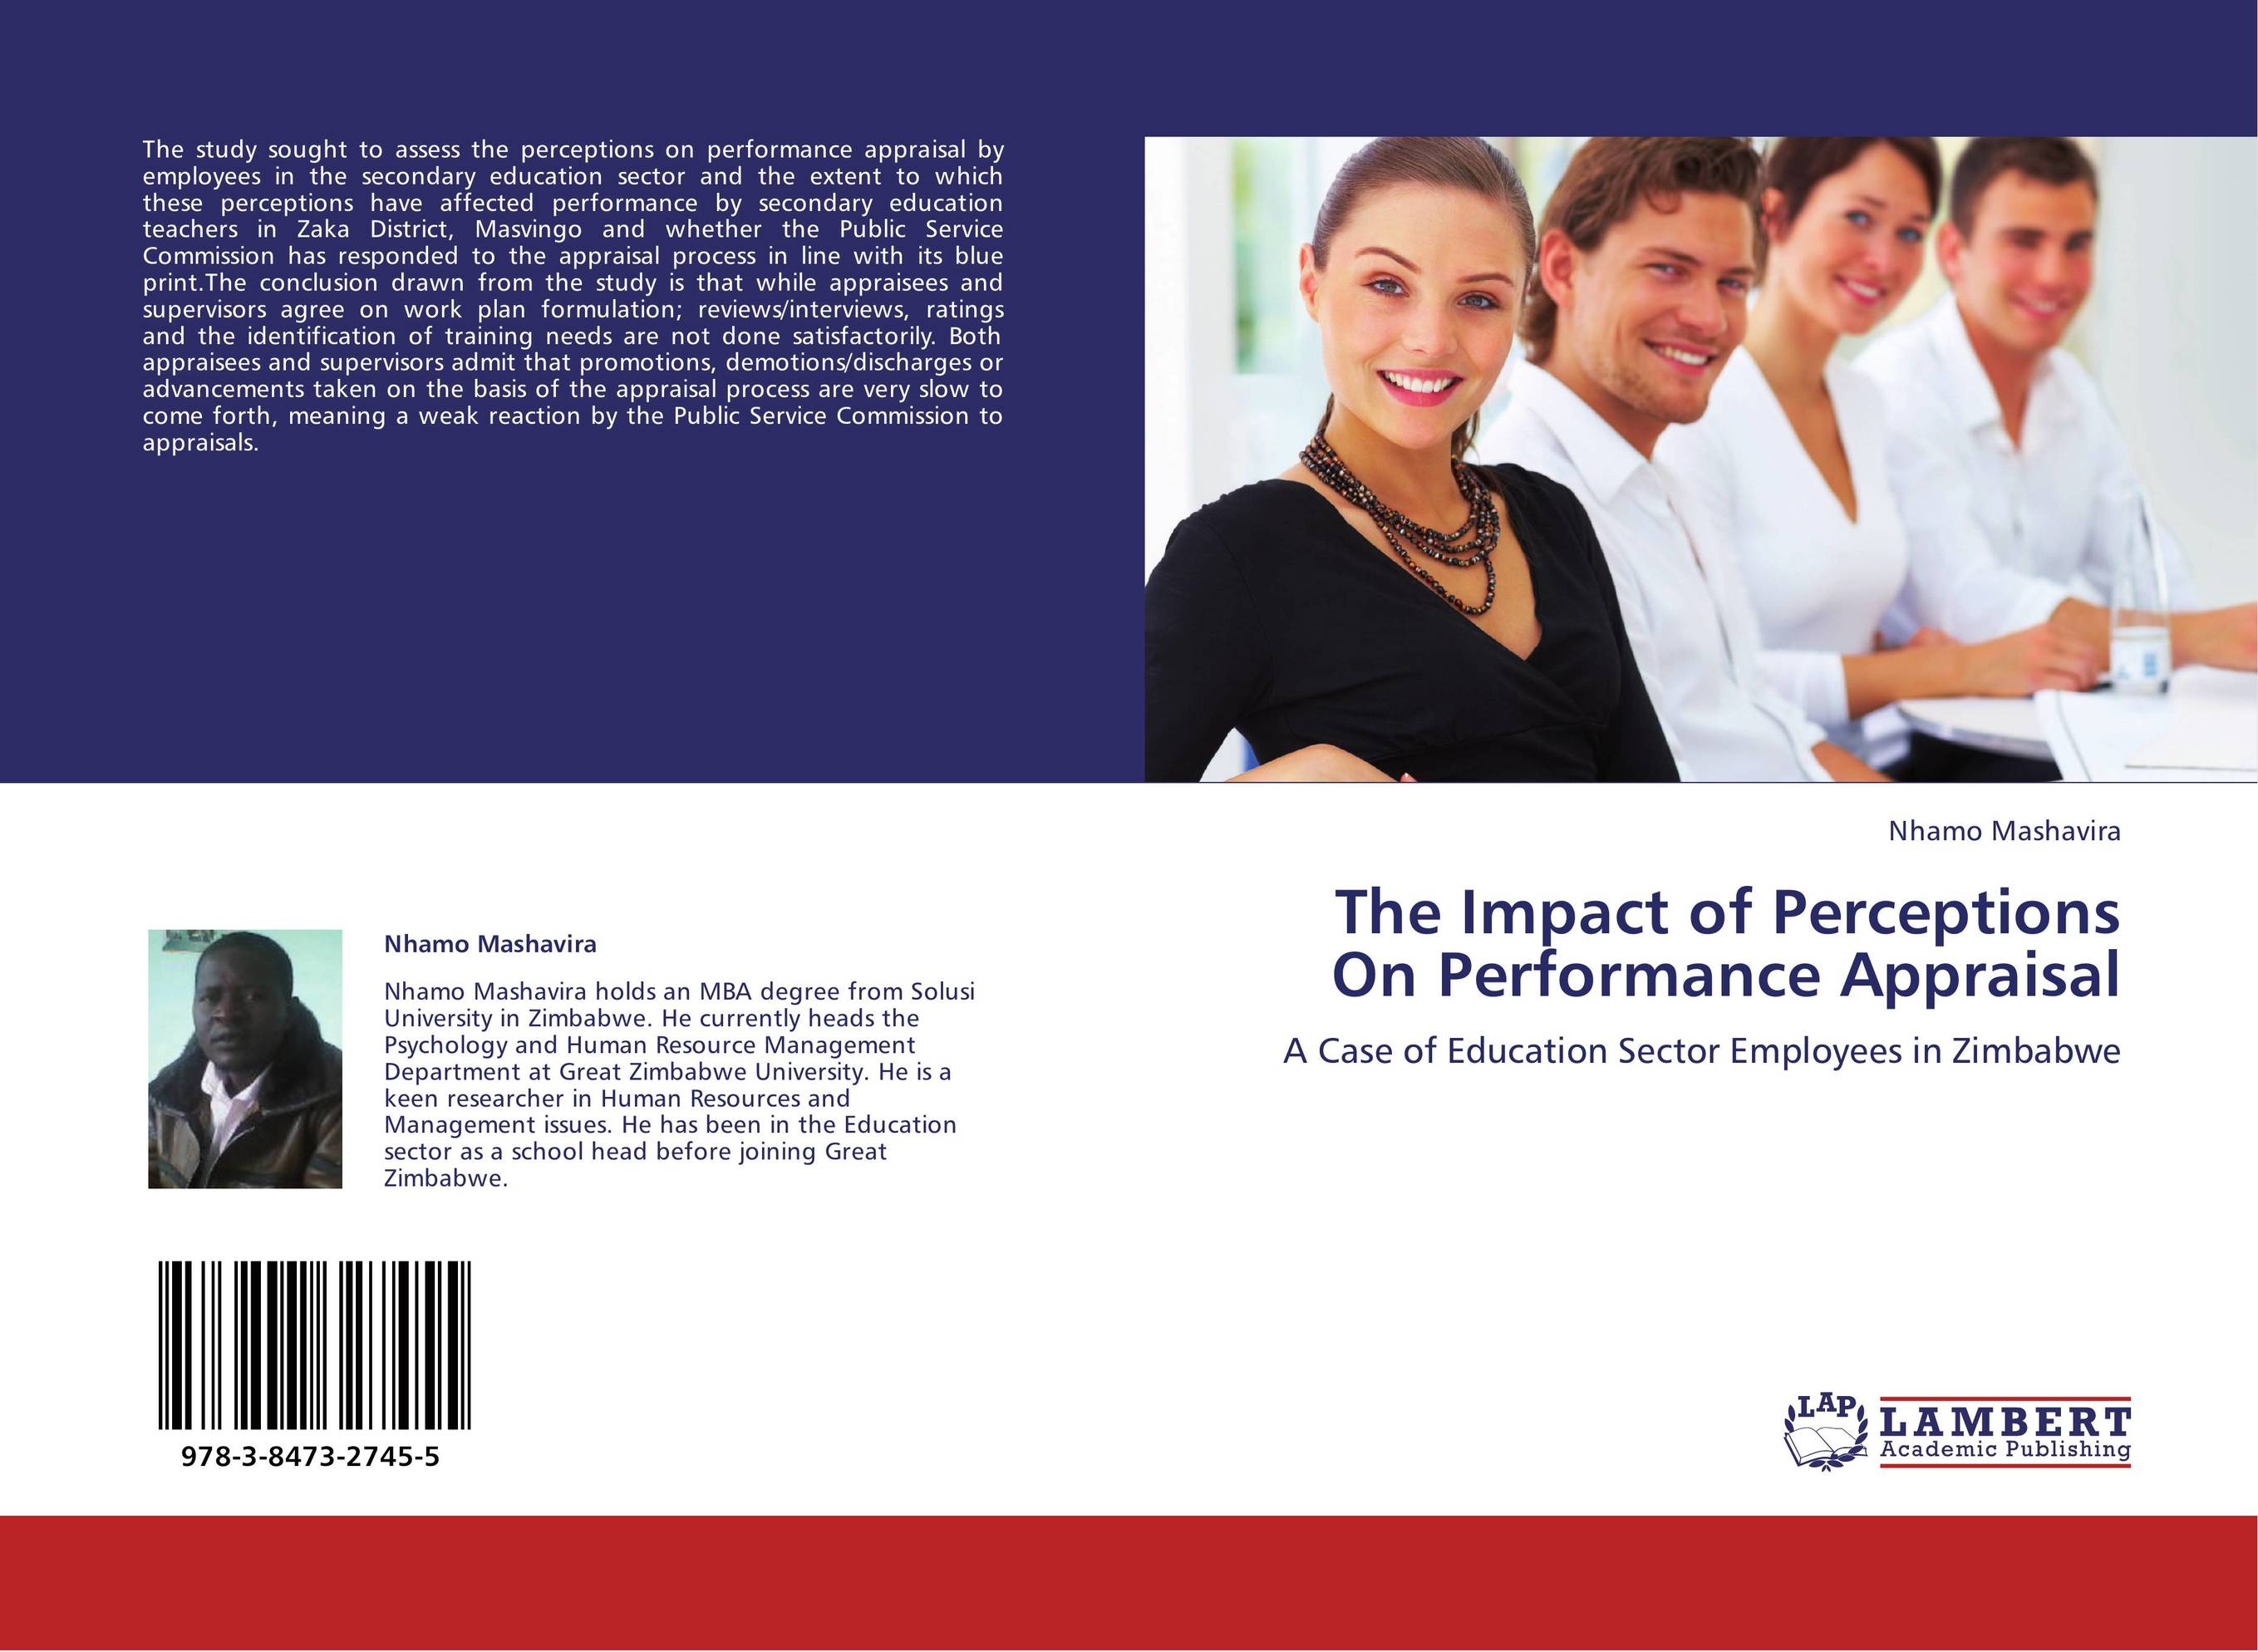 impacts of communication on employees performance Perhaps the most compelling evidence of employee engagement's impact on performance is its link to stock performance forbes describes a 39 times earnings per share growth rate between companies with employees who have the highest engagement levels versus the lowest.